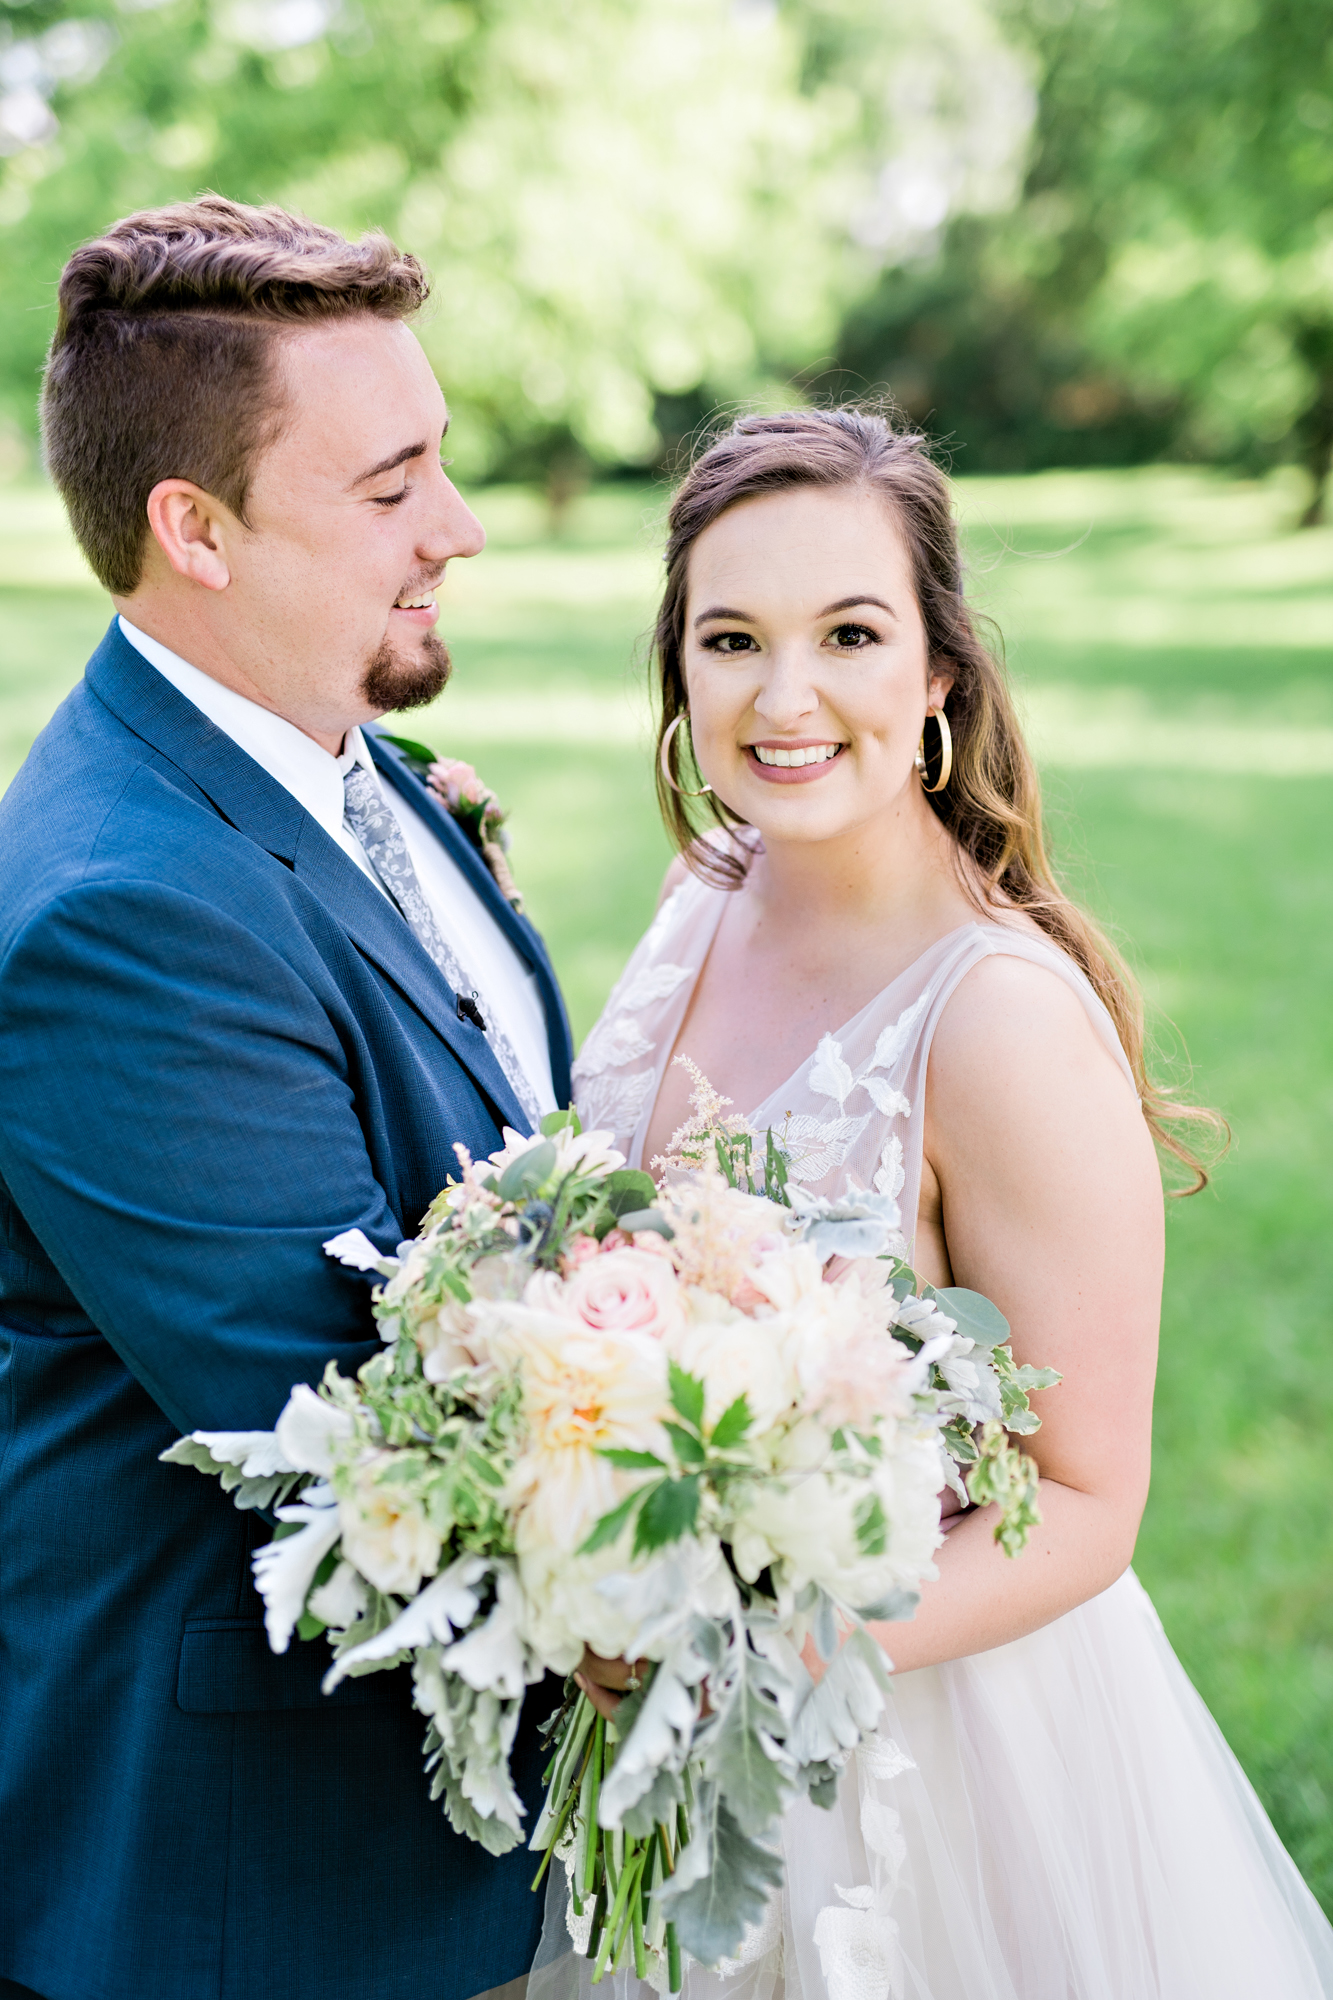 Eclectic-Alabama-Wedding-Photographers-Nick-Drollette-Photography-89.jpg